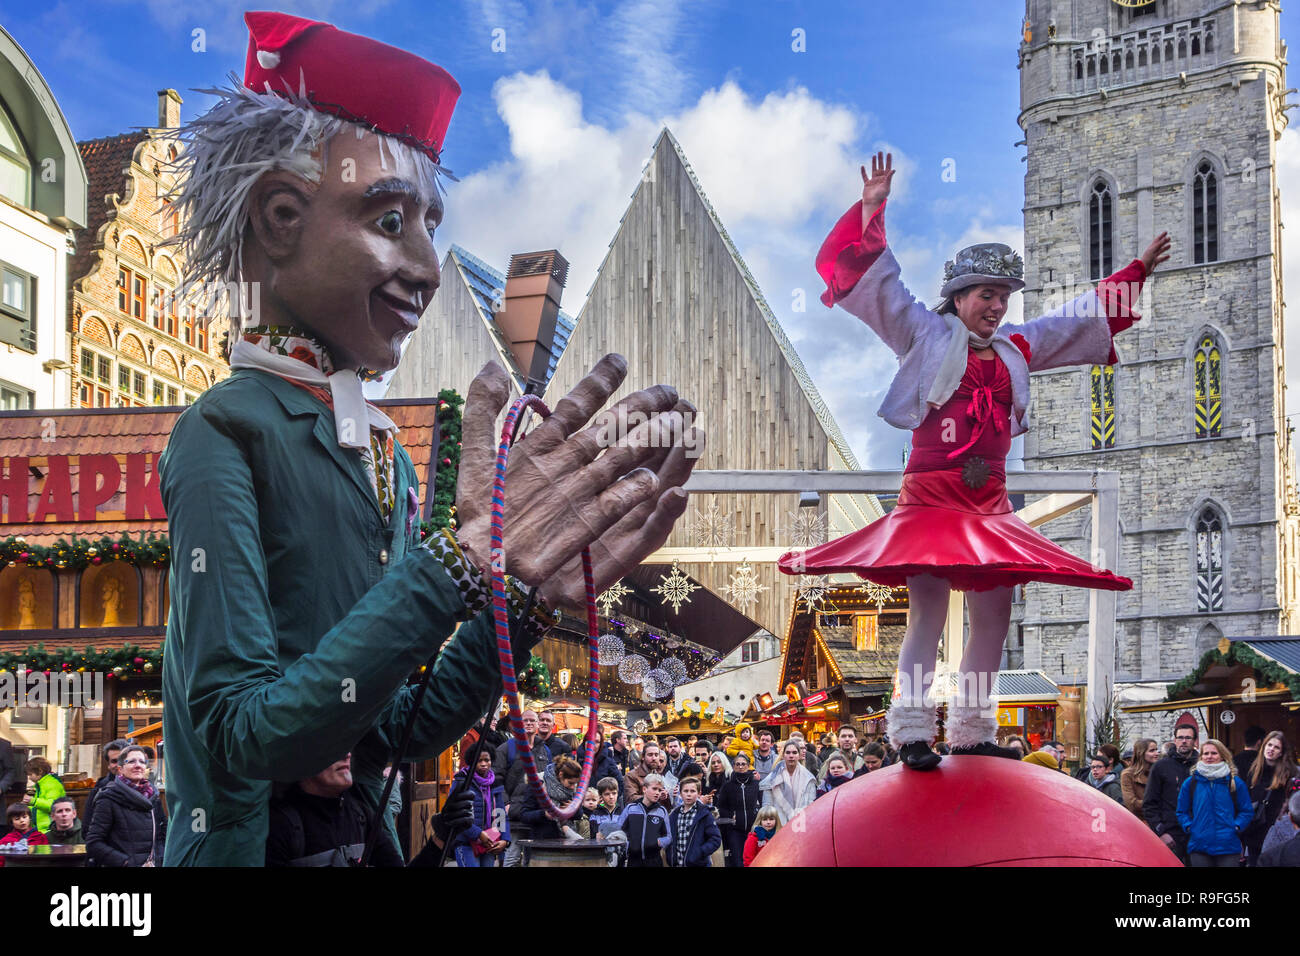 Puppeteer and street performer performing balancing act on giant ball during Christmas market in winter in Ghent, Flanders, Belgium - Stock Image